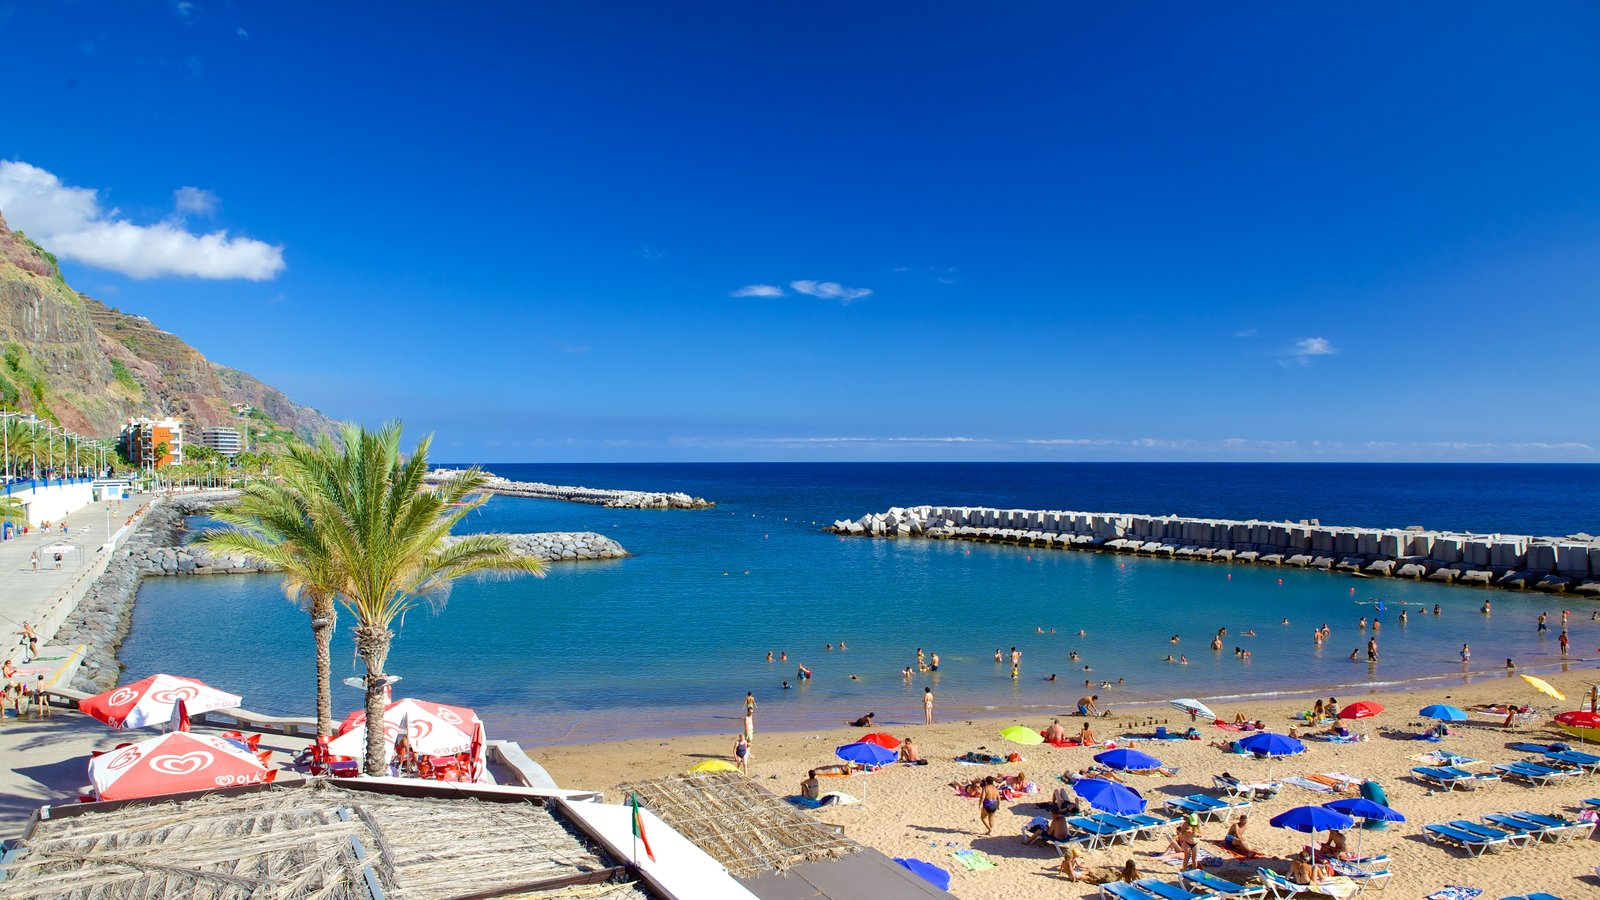 Madeira Island featuring swimming and a beach